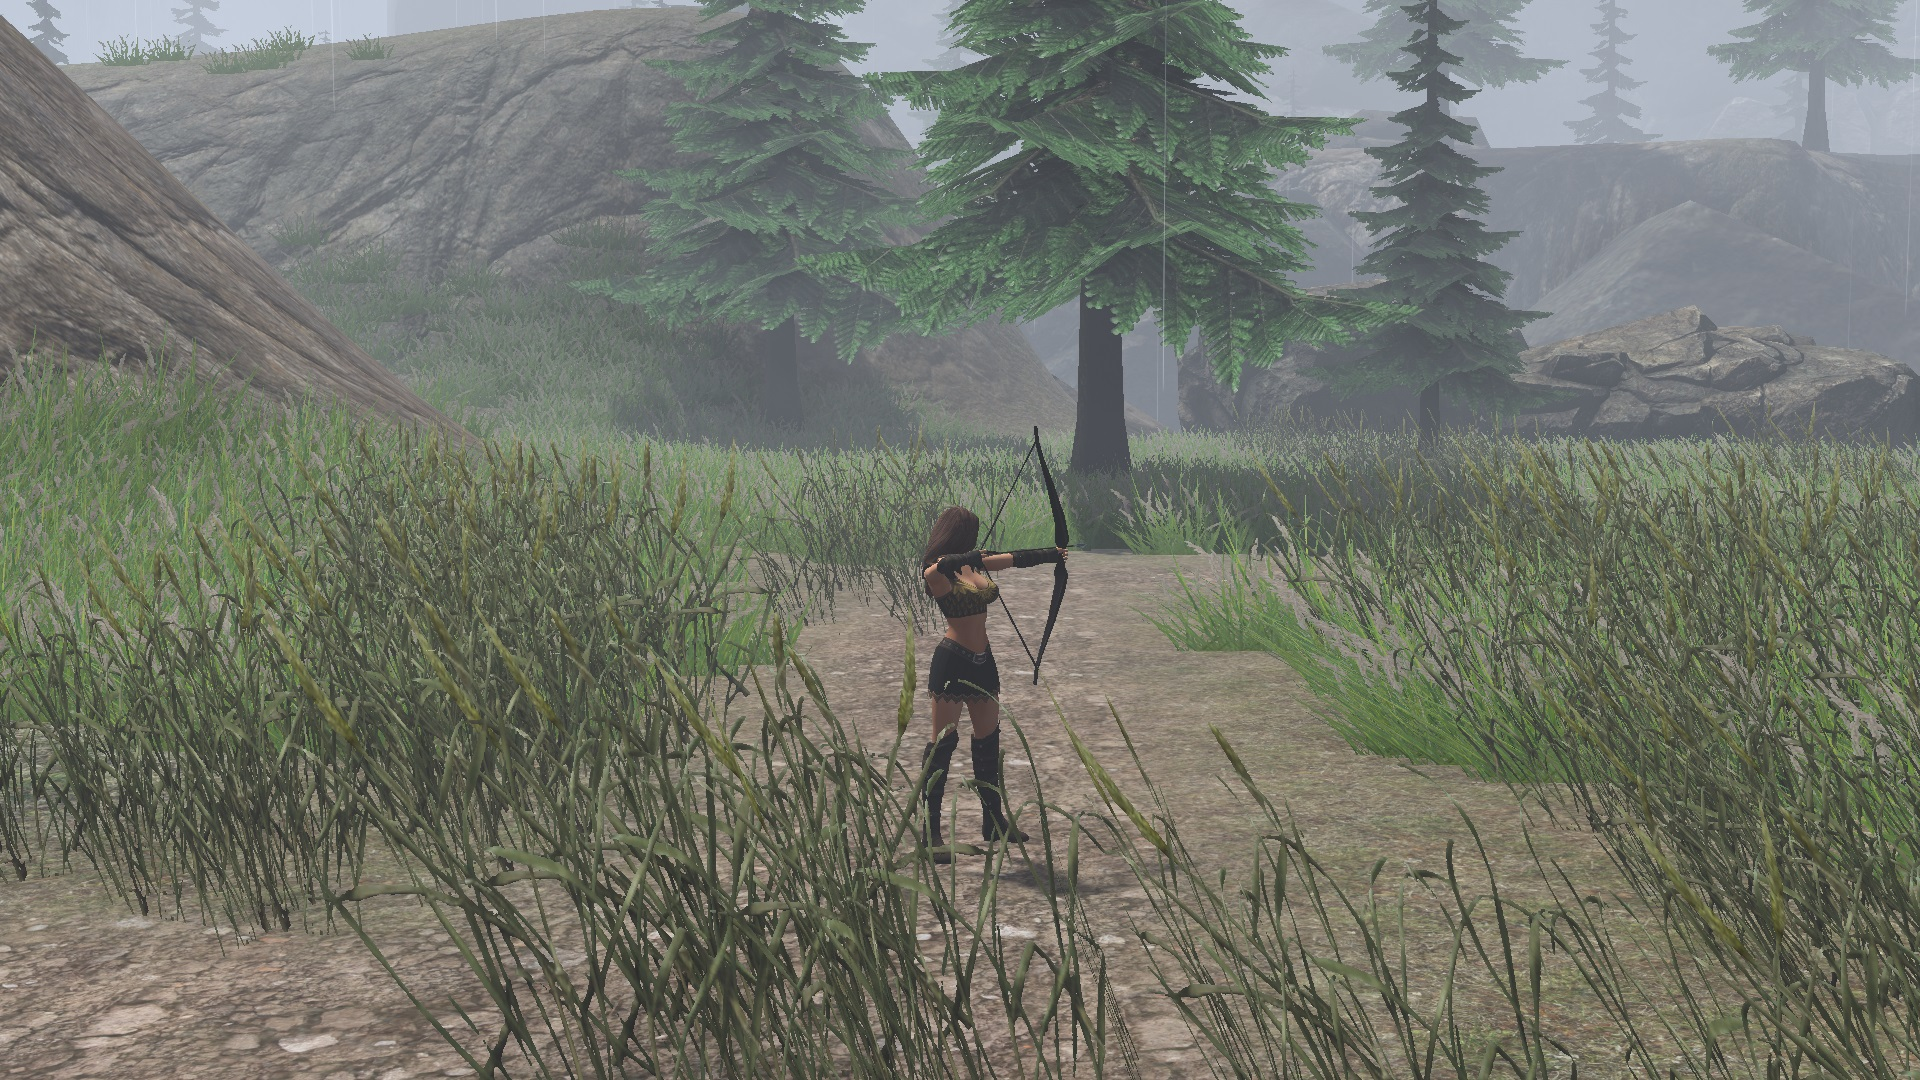 Working bow in game. Player finds it at the very beginning of level